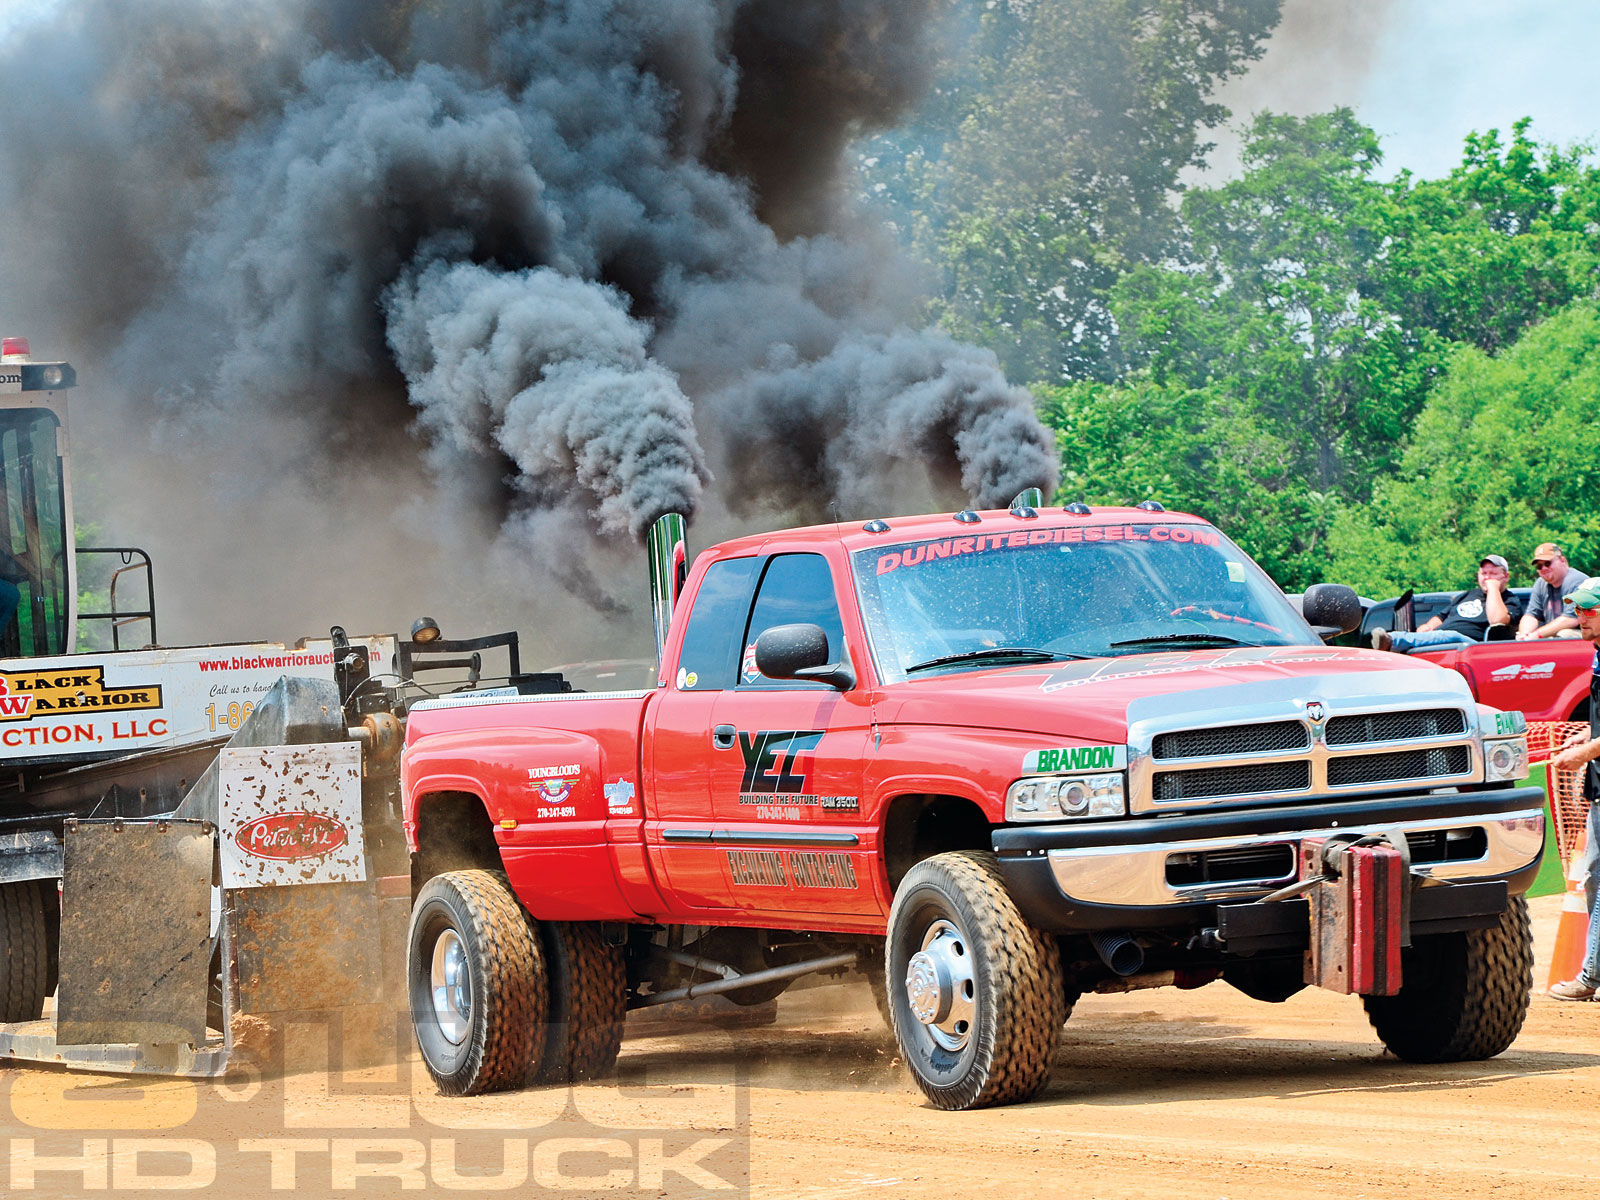 Dodge Diesel Truck Wallpaper Images Pictures   Becuo 1600x1200